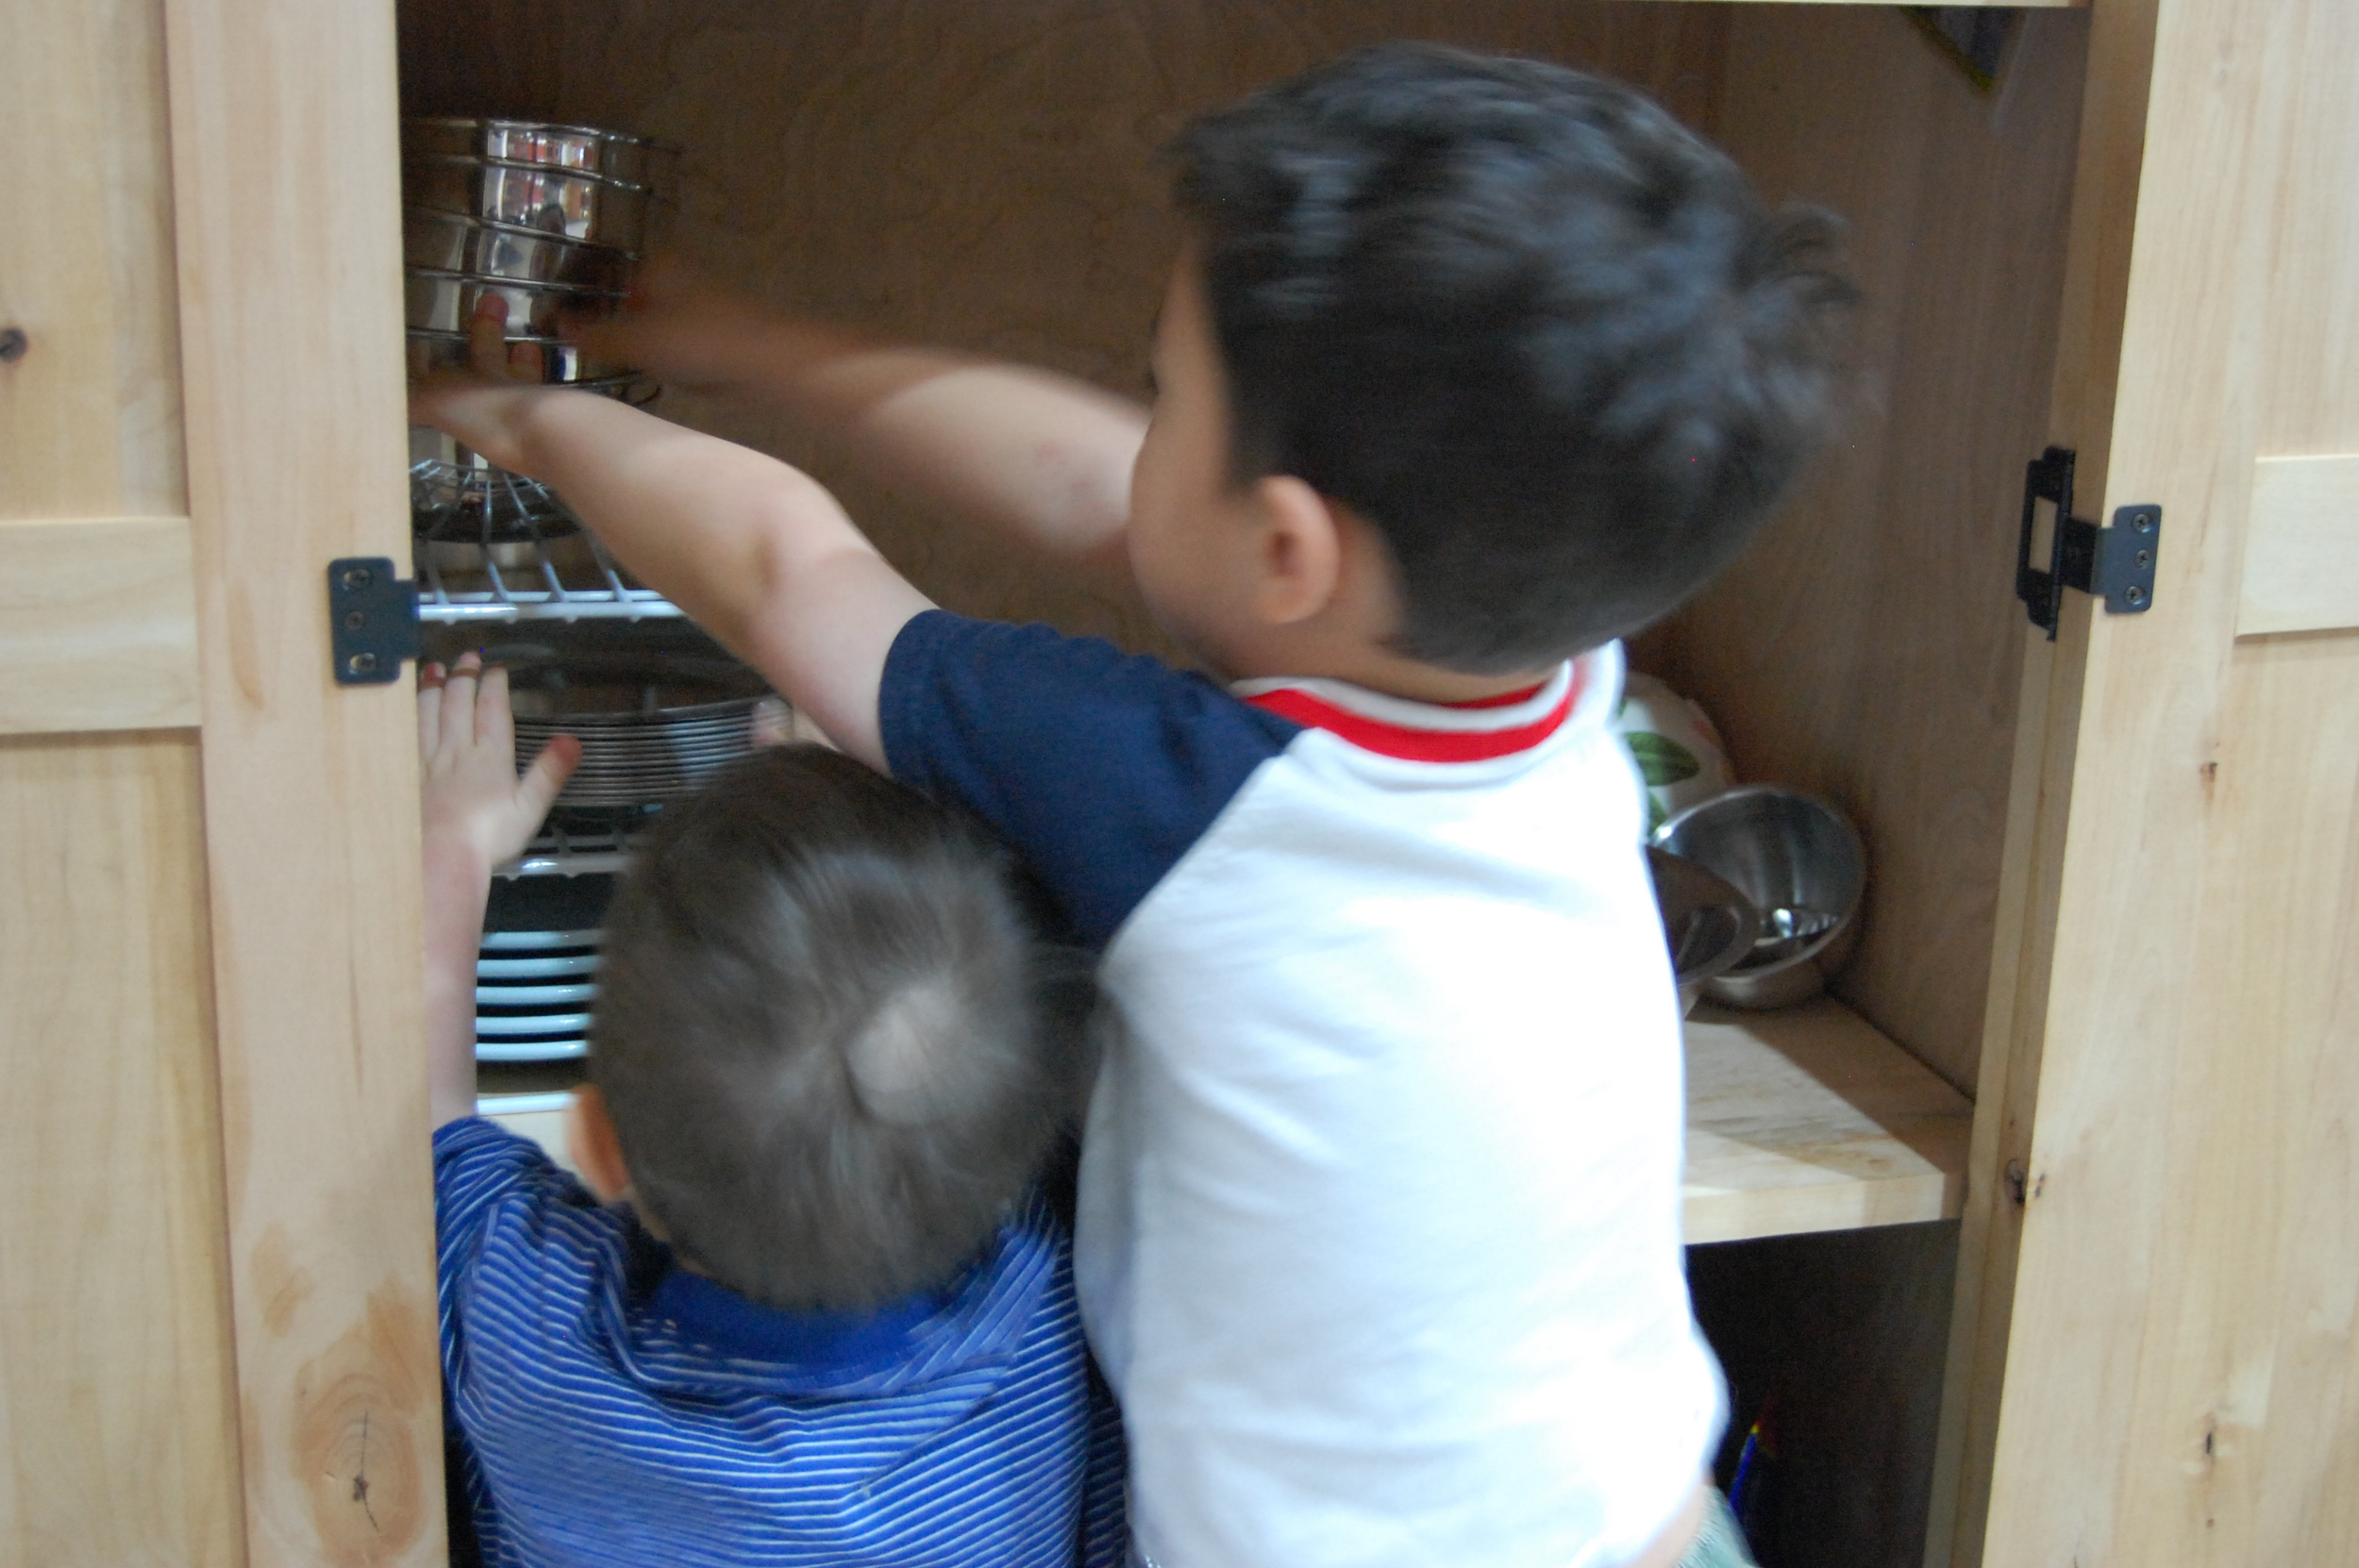 2011  - Noah (2) and Abraham (4) put away our stainless steel plates, bowls, and cups and enjoy stacking them. This was one of their favorite parts of unloading the dishwasher.